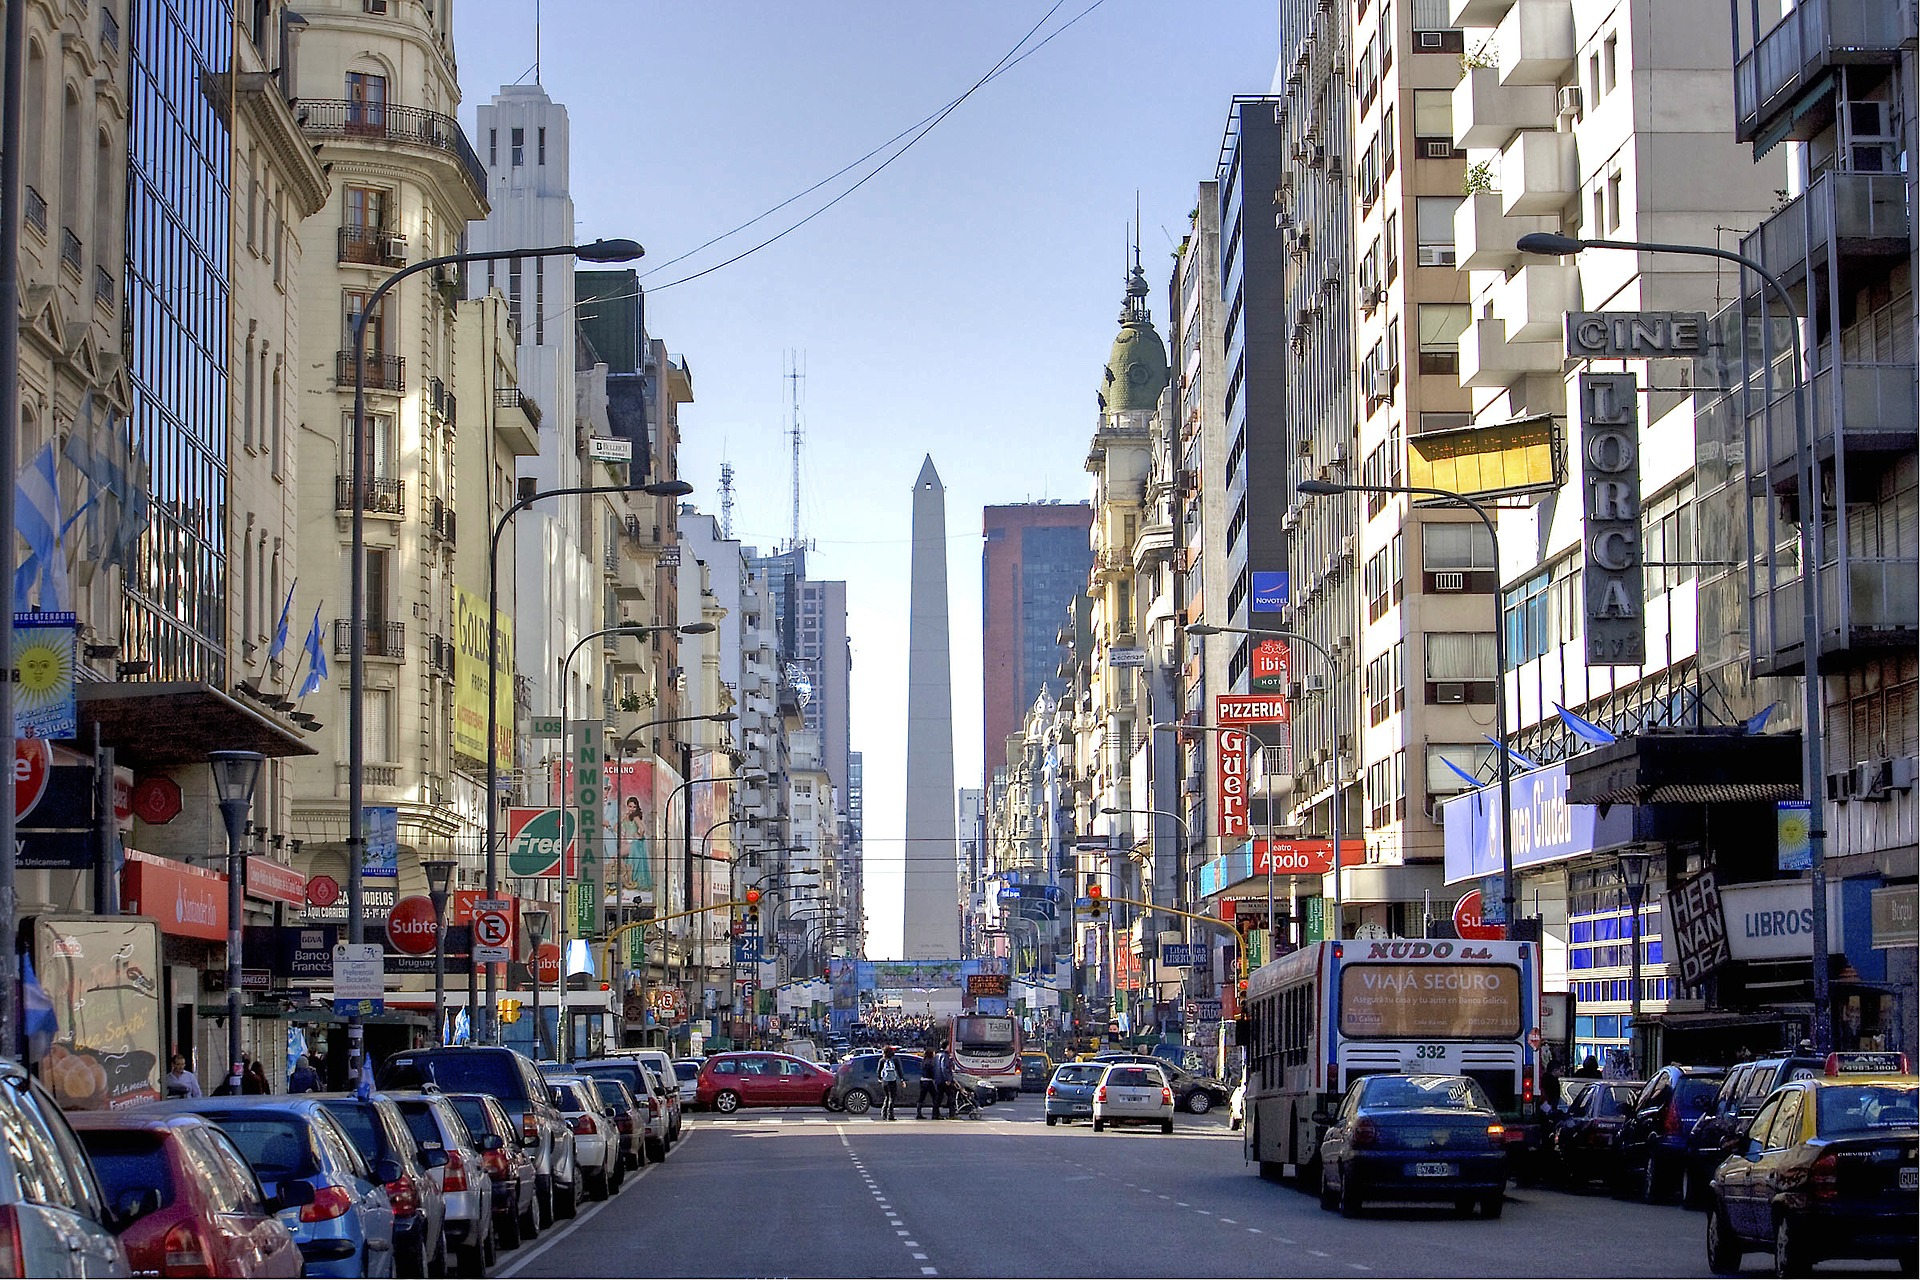 <p>Buenos Aires, Argentina is one of many cities struggling to get the activity data needed to create climate action plans. Photo by Halloween HJB/Pixabay</p>